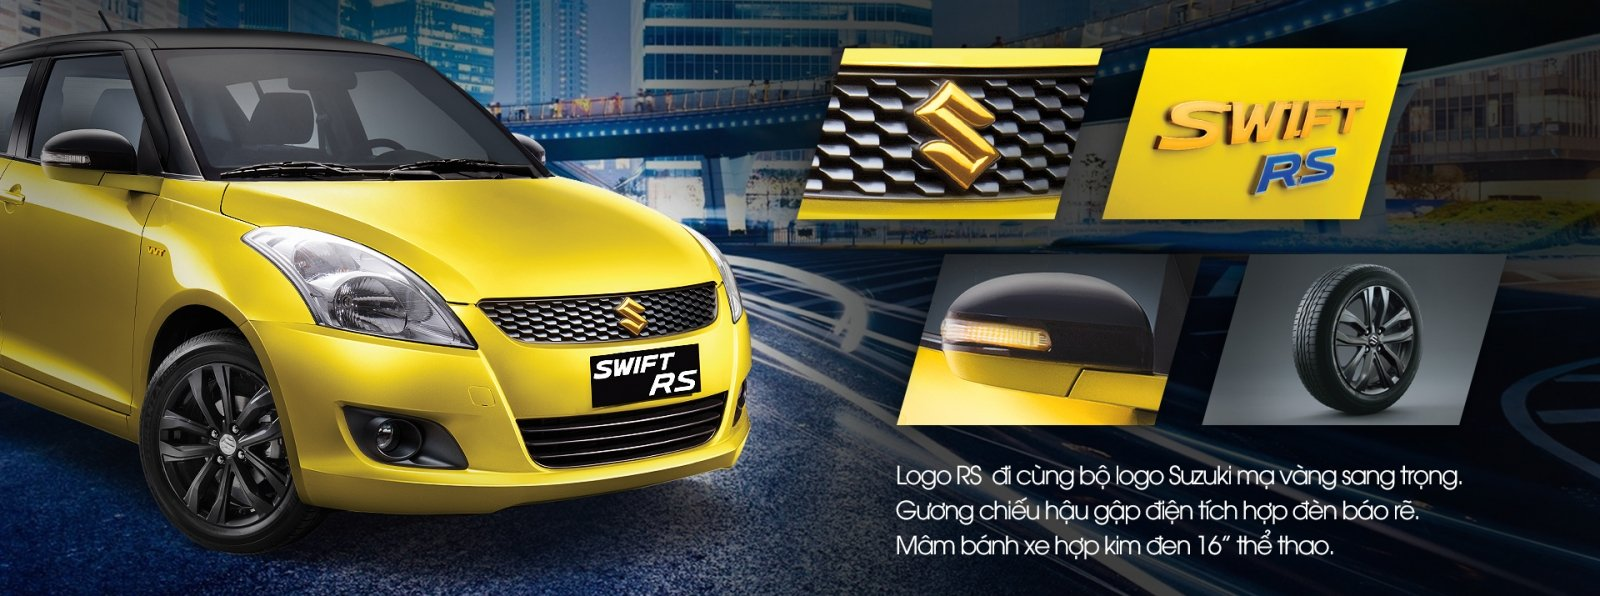 suzuki swift 1.4at rs new